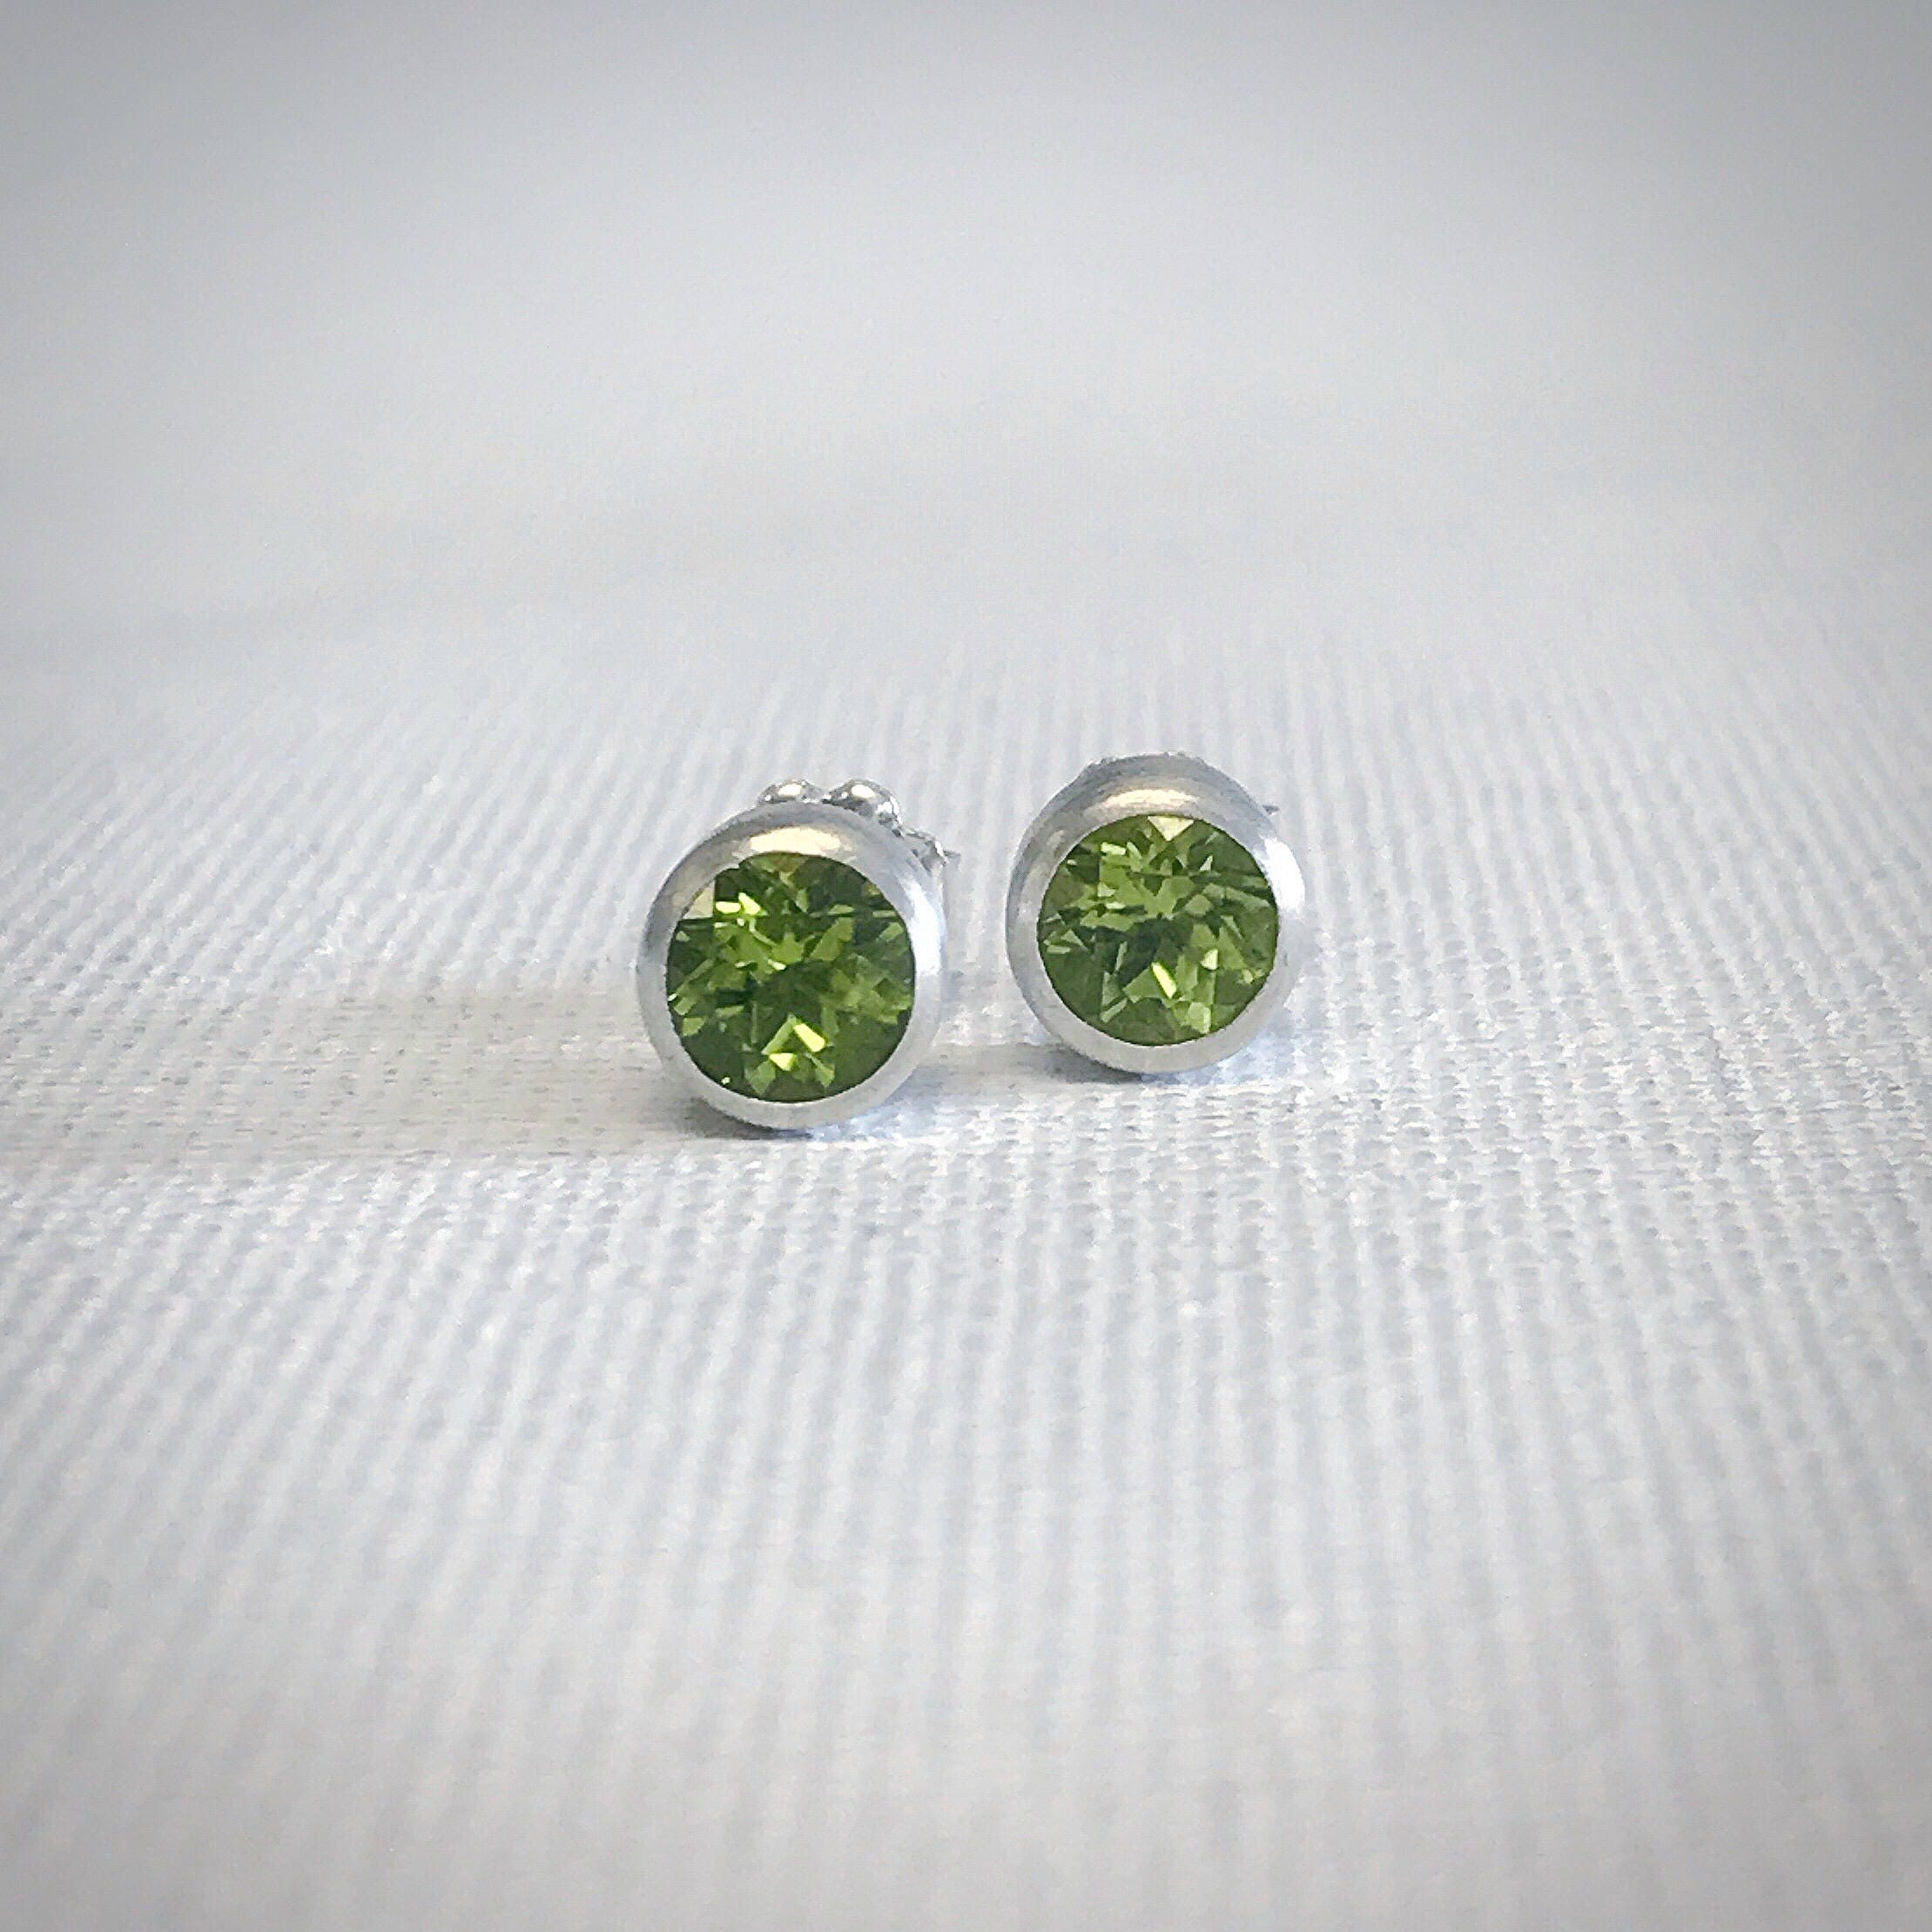 pdp peridot stud earrings online johnlewis buyewa ewa at john com rsp main lewis